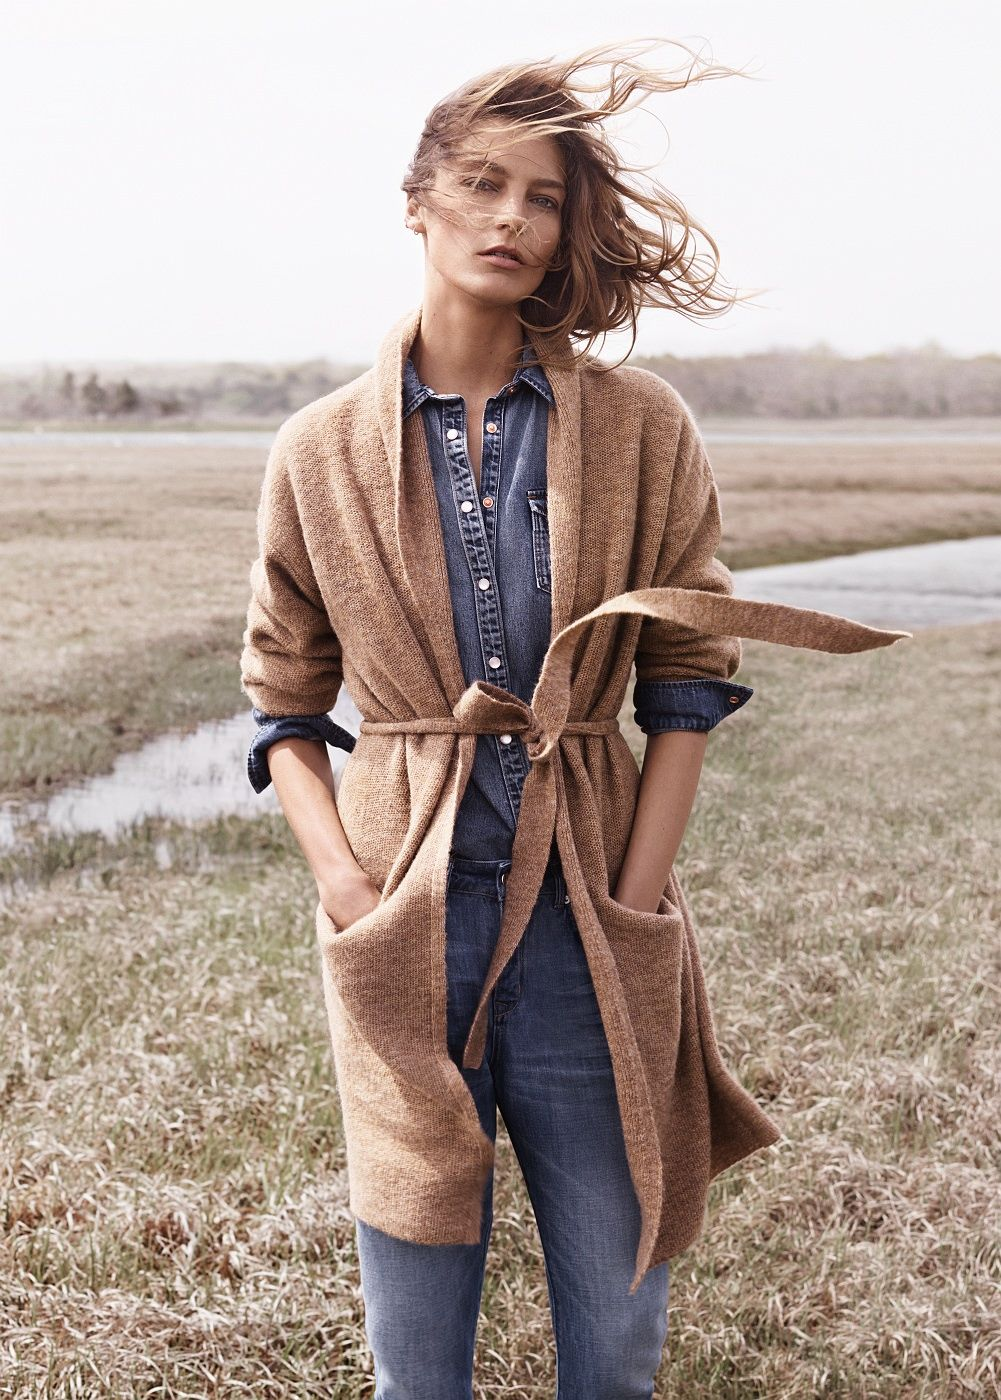 Wool-blend long cardigan | Long cardigan, Winter and Camels